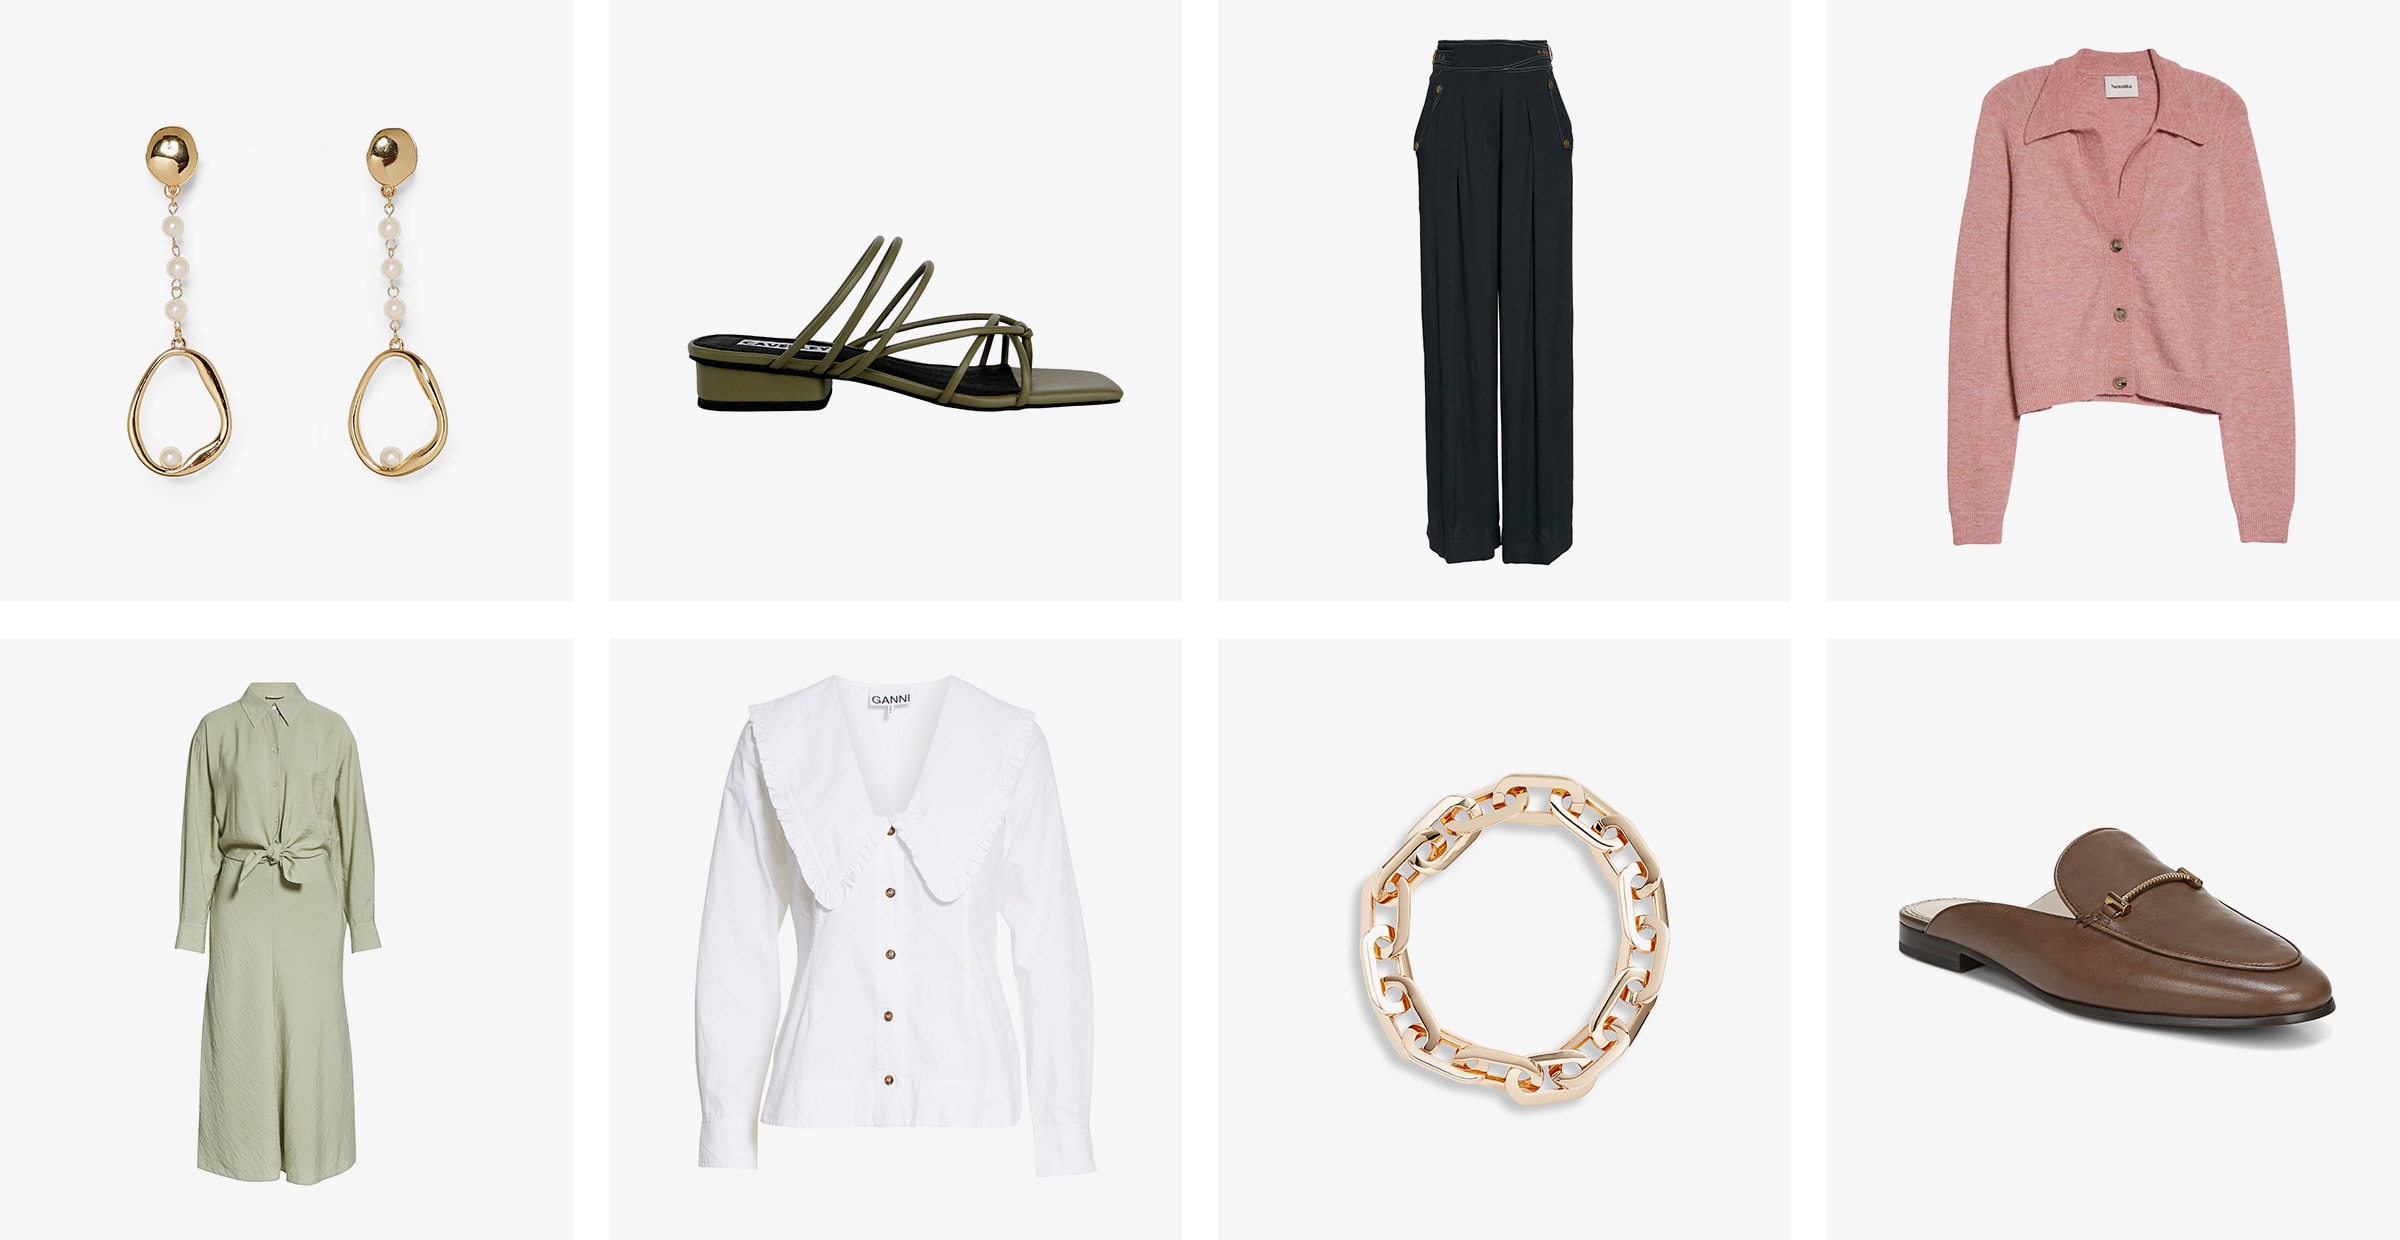 Women's earrings, sandal, trousers, sweater, shirtdress, blouse, necklace and mule.